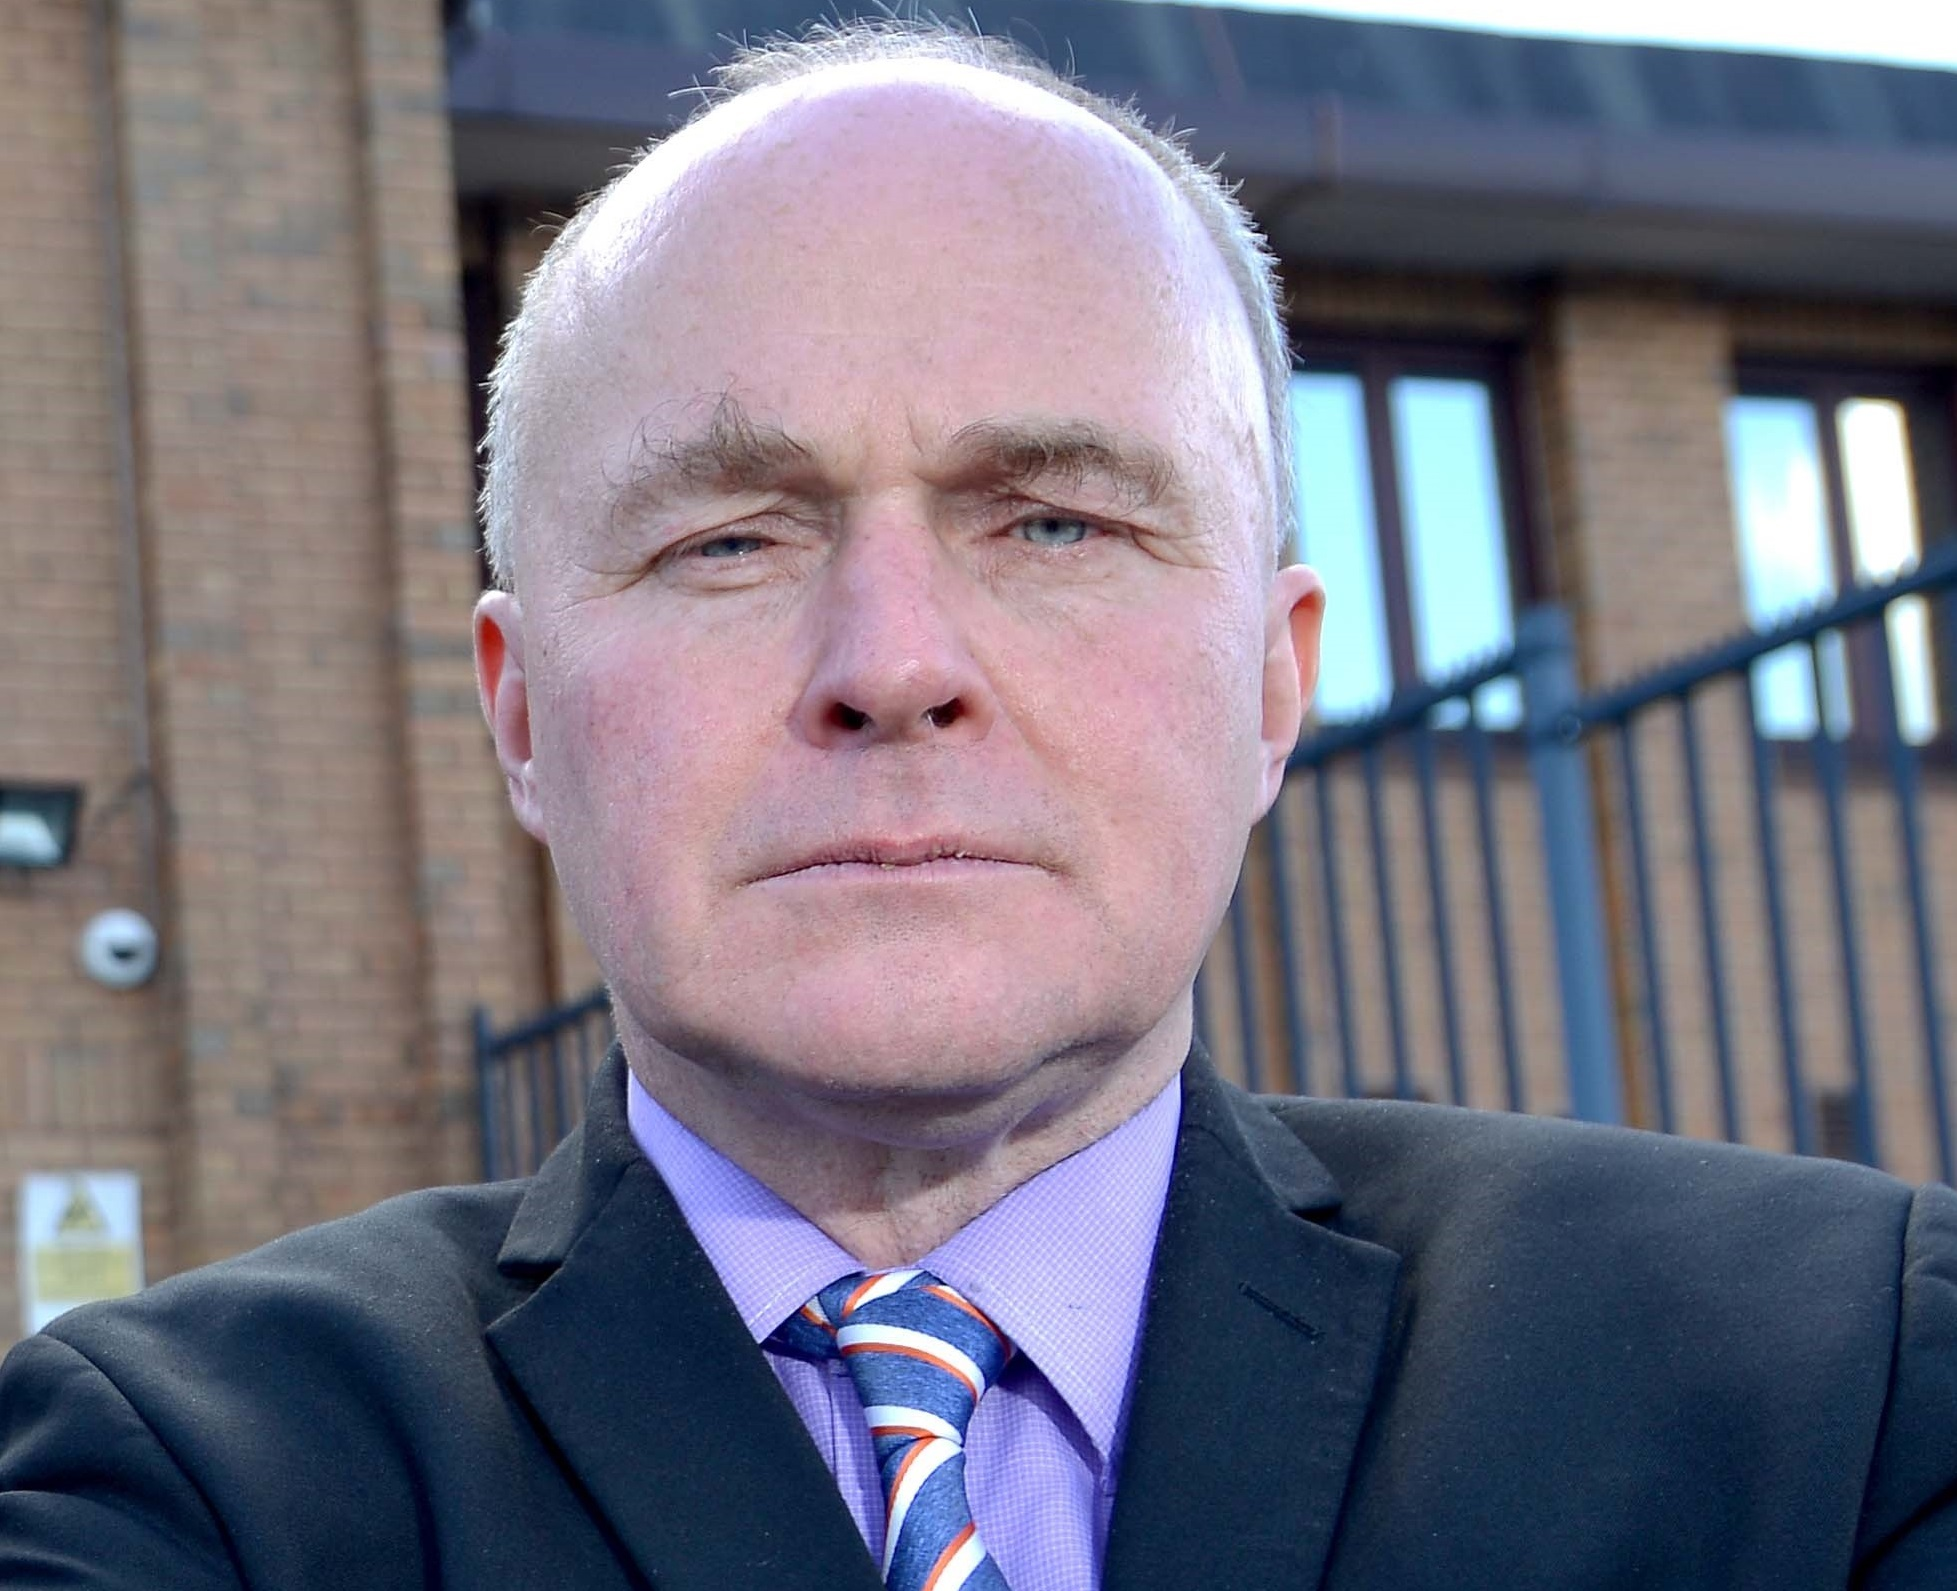 Keighley MP John Grogan, who said he believes Bradford district already has the right formula to effectively guard children against sexual predators